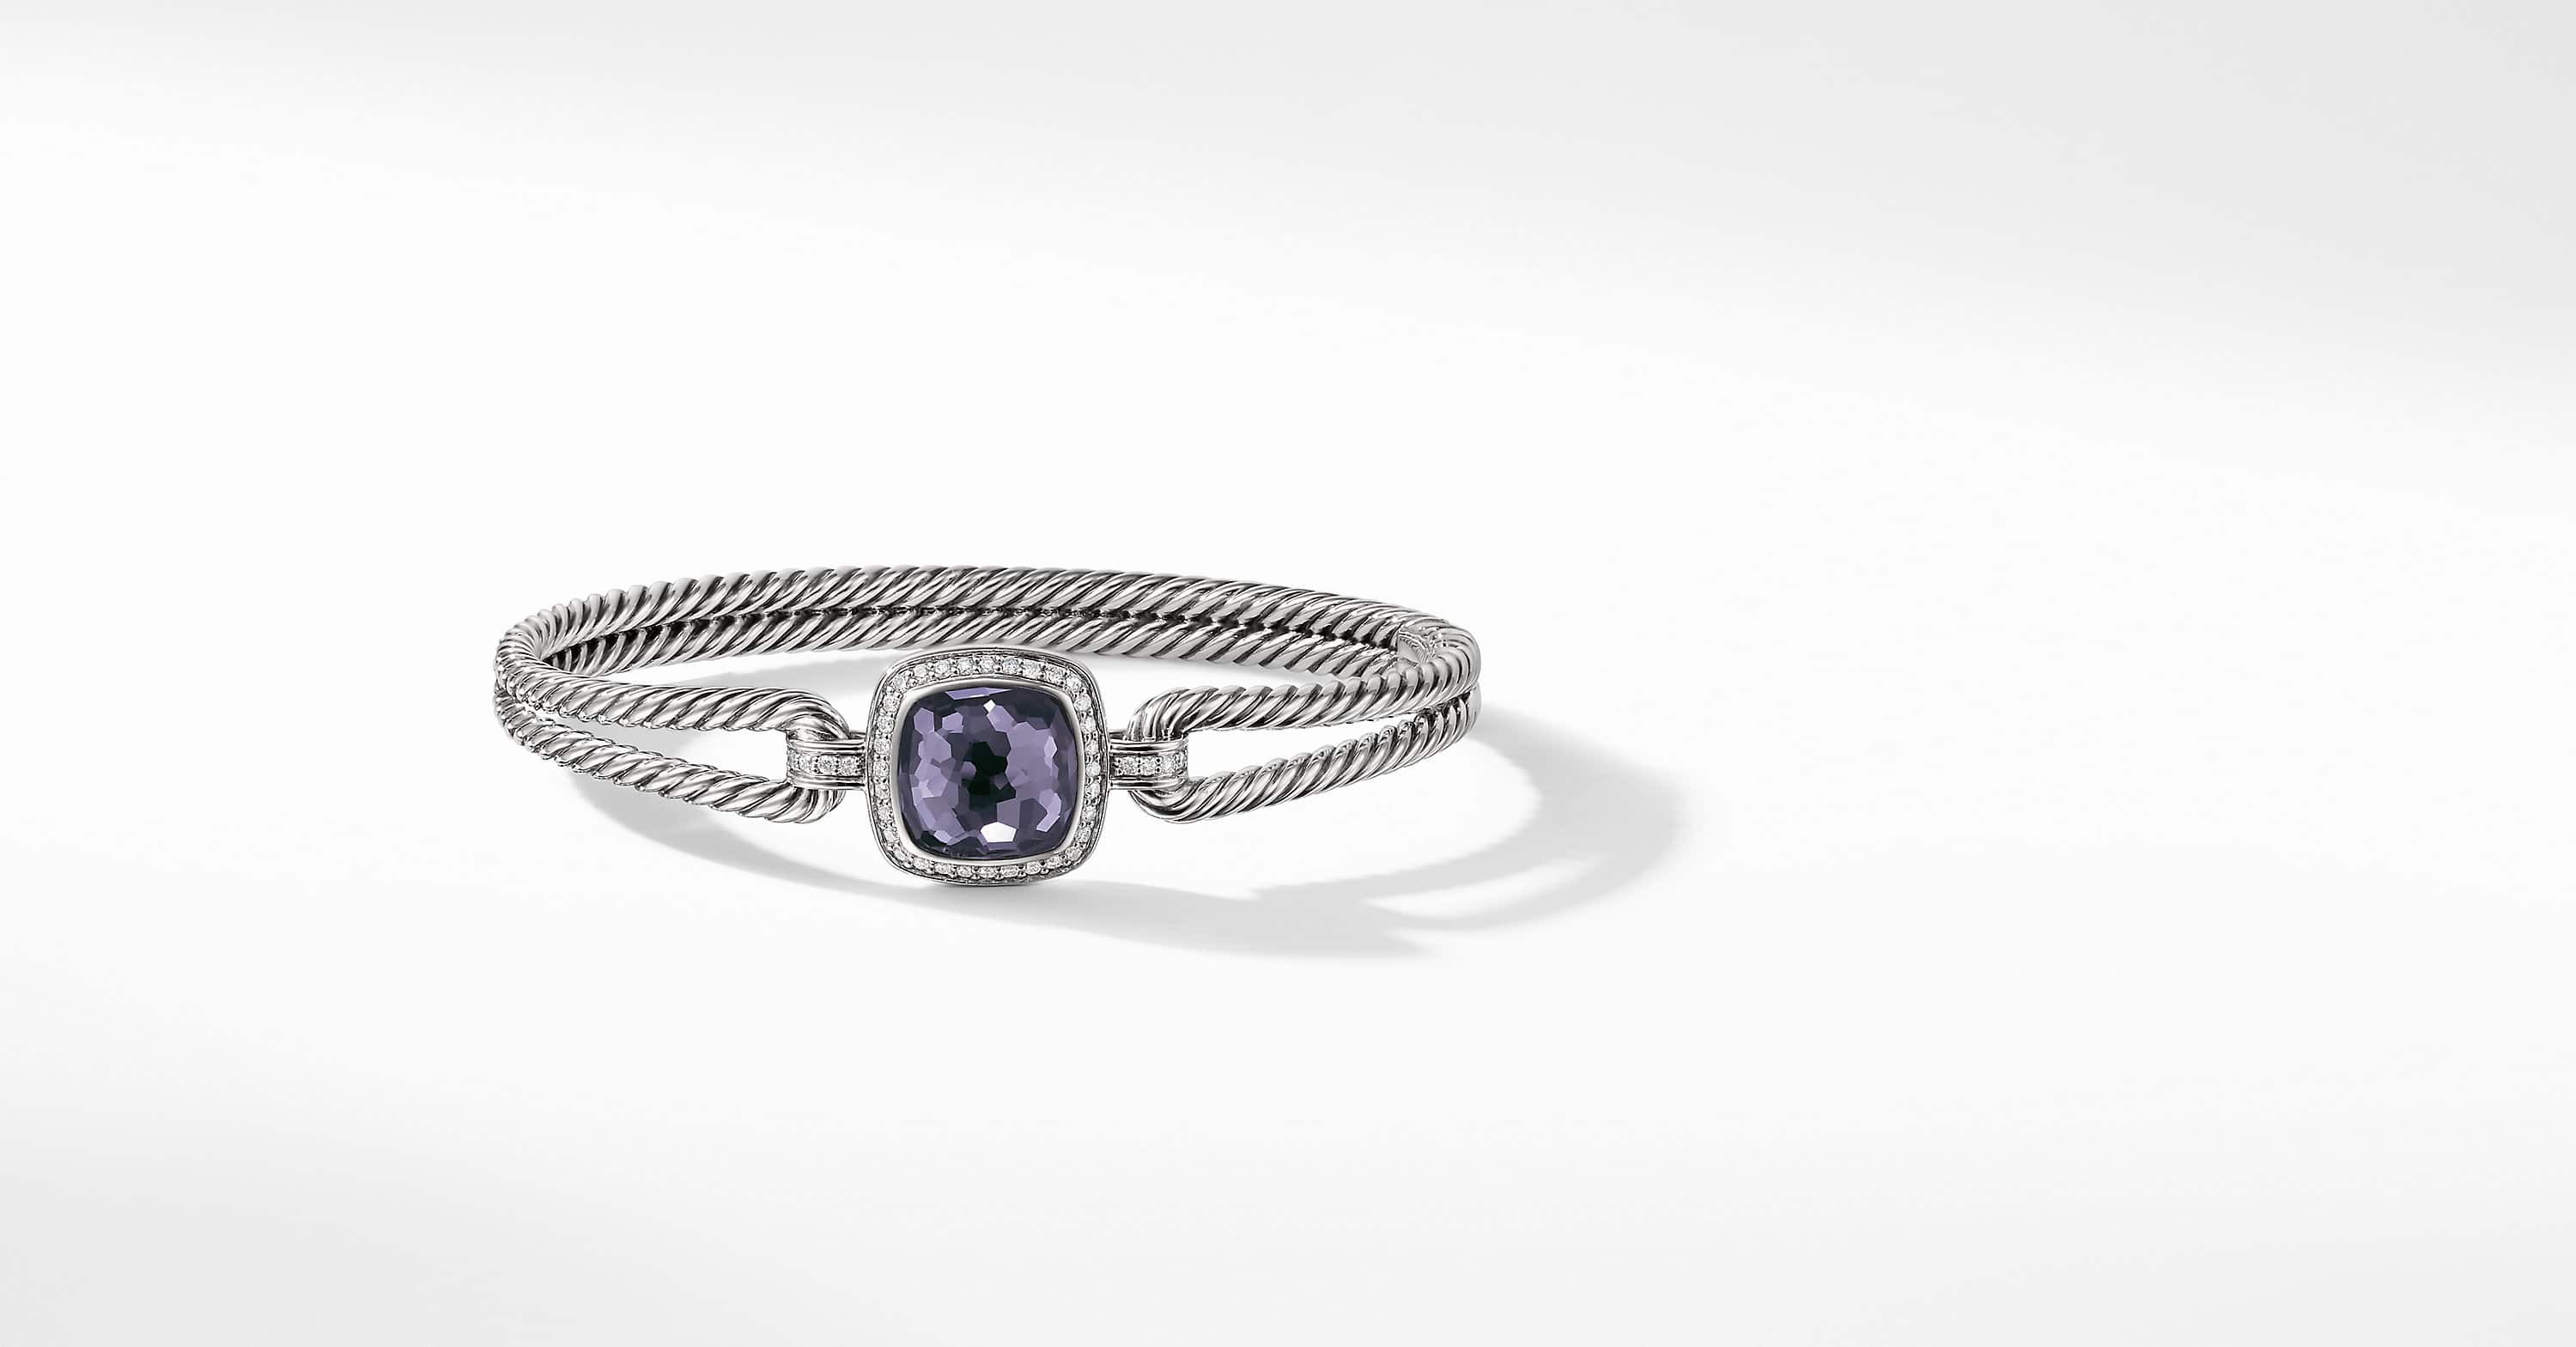 Albion Bracelet with Diamonds, 11mm